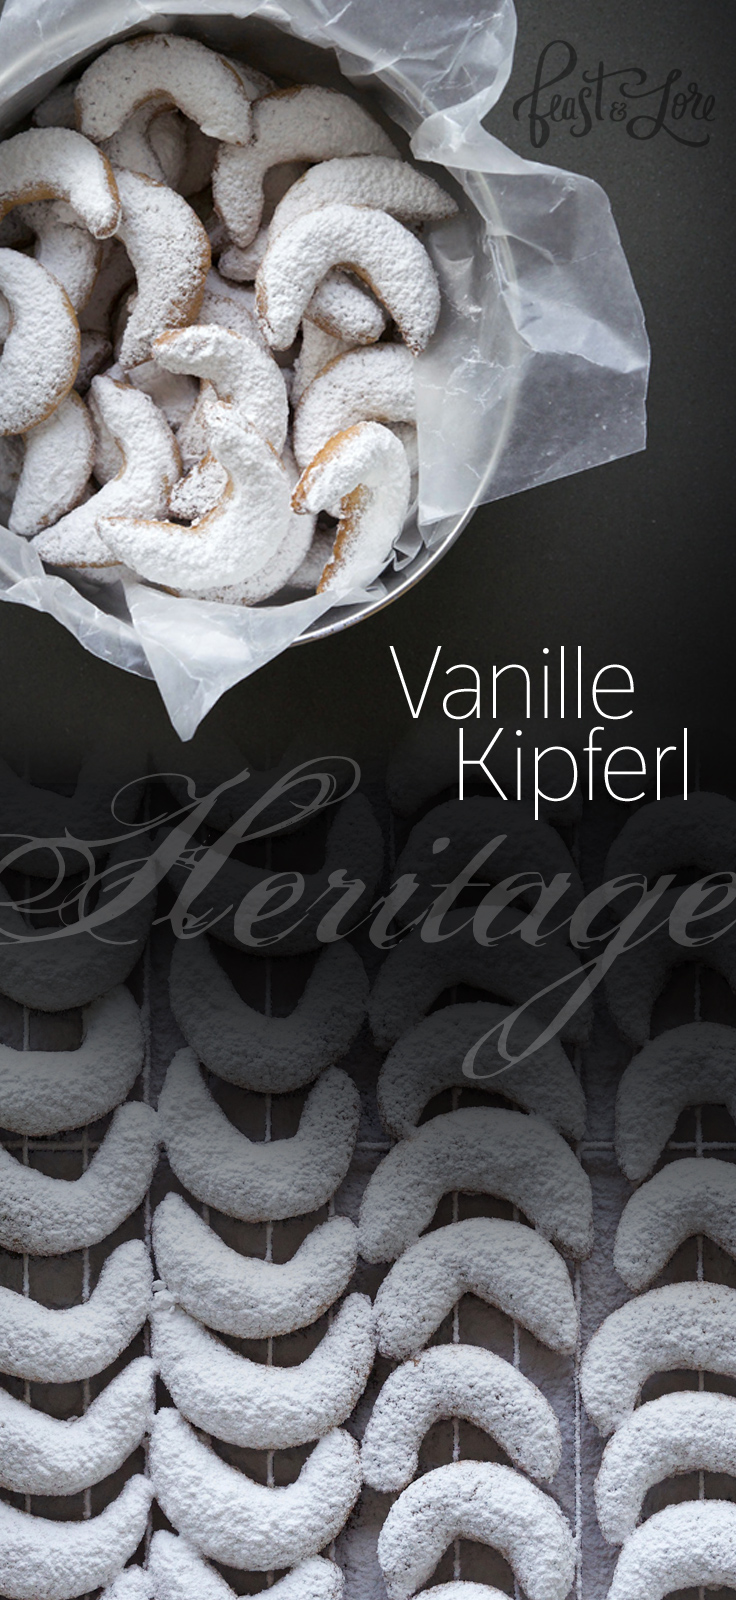 Vanillekipferl heritage recipe passed down from Grandma